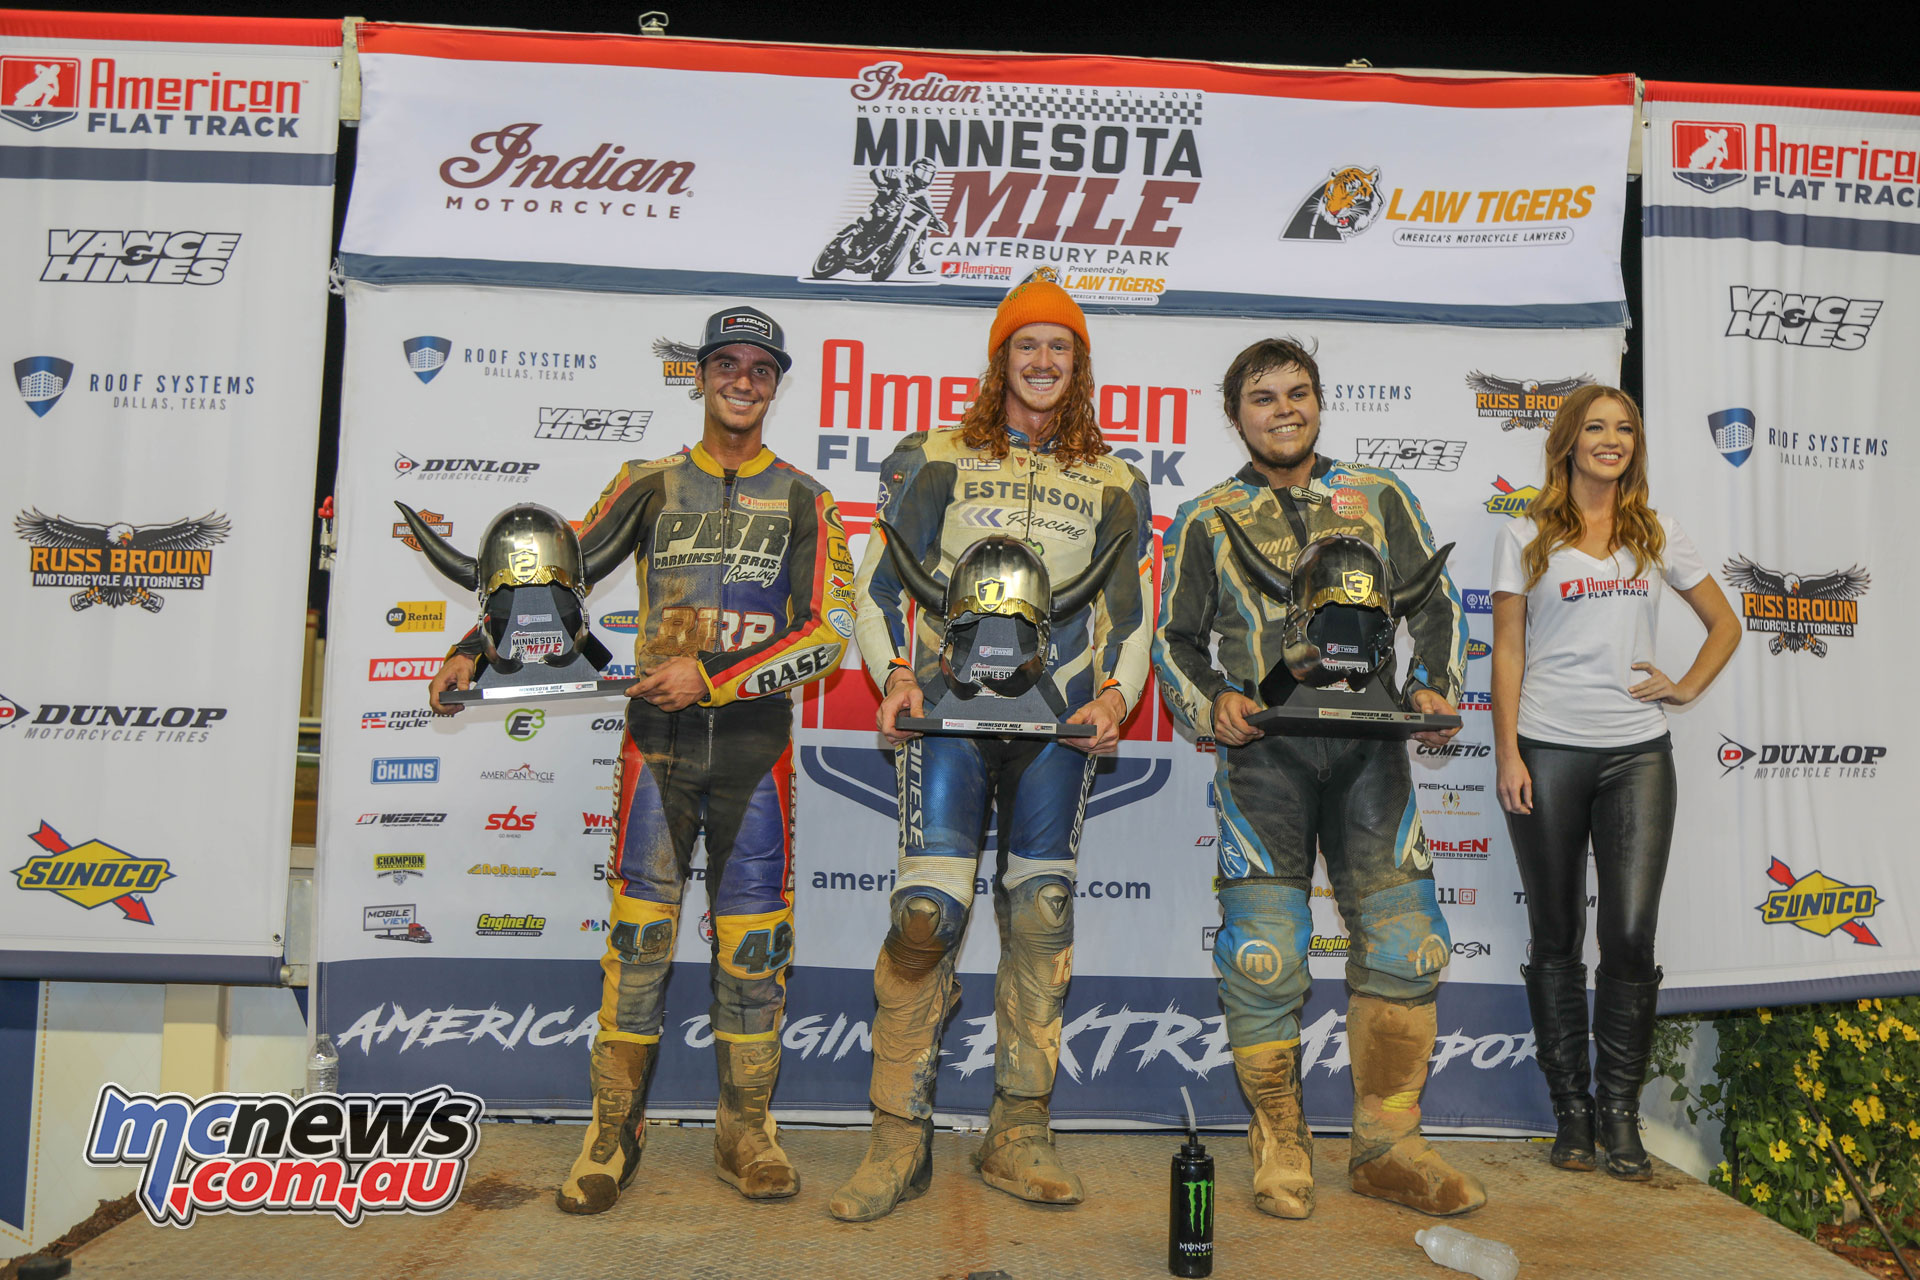 AFT Rnd Minnesota Mile Prod Twins Podium FA